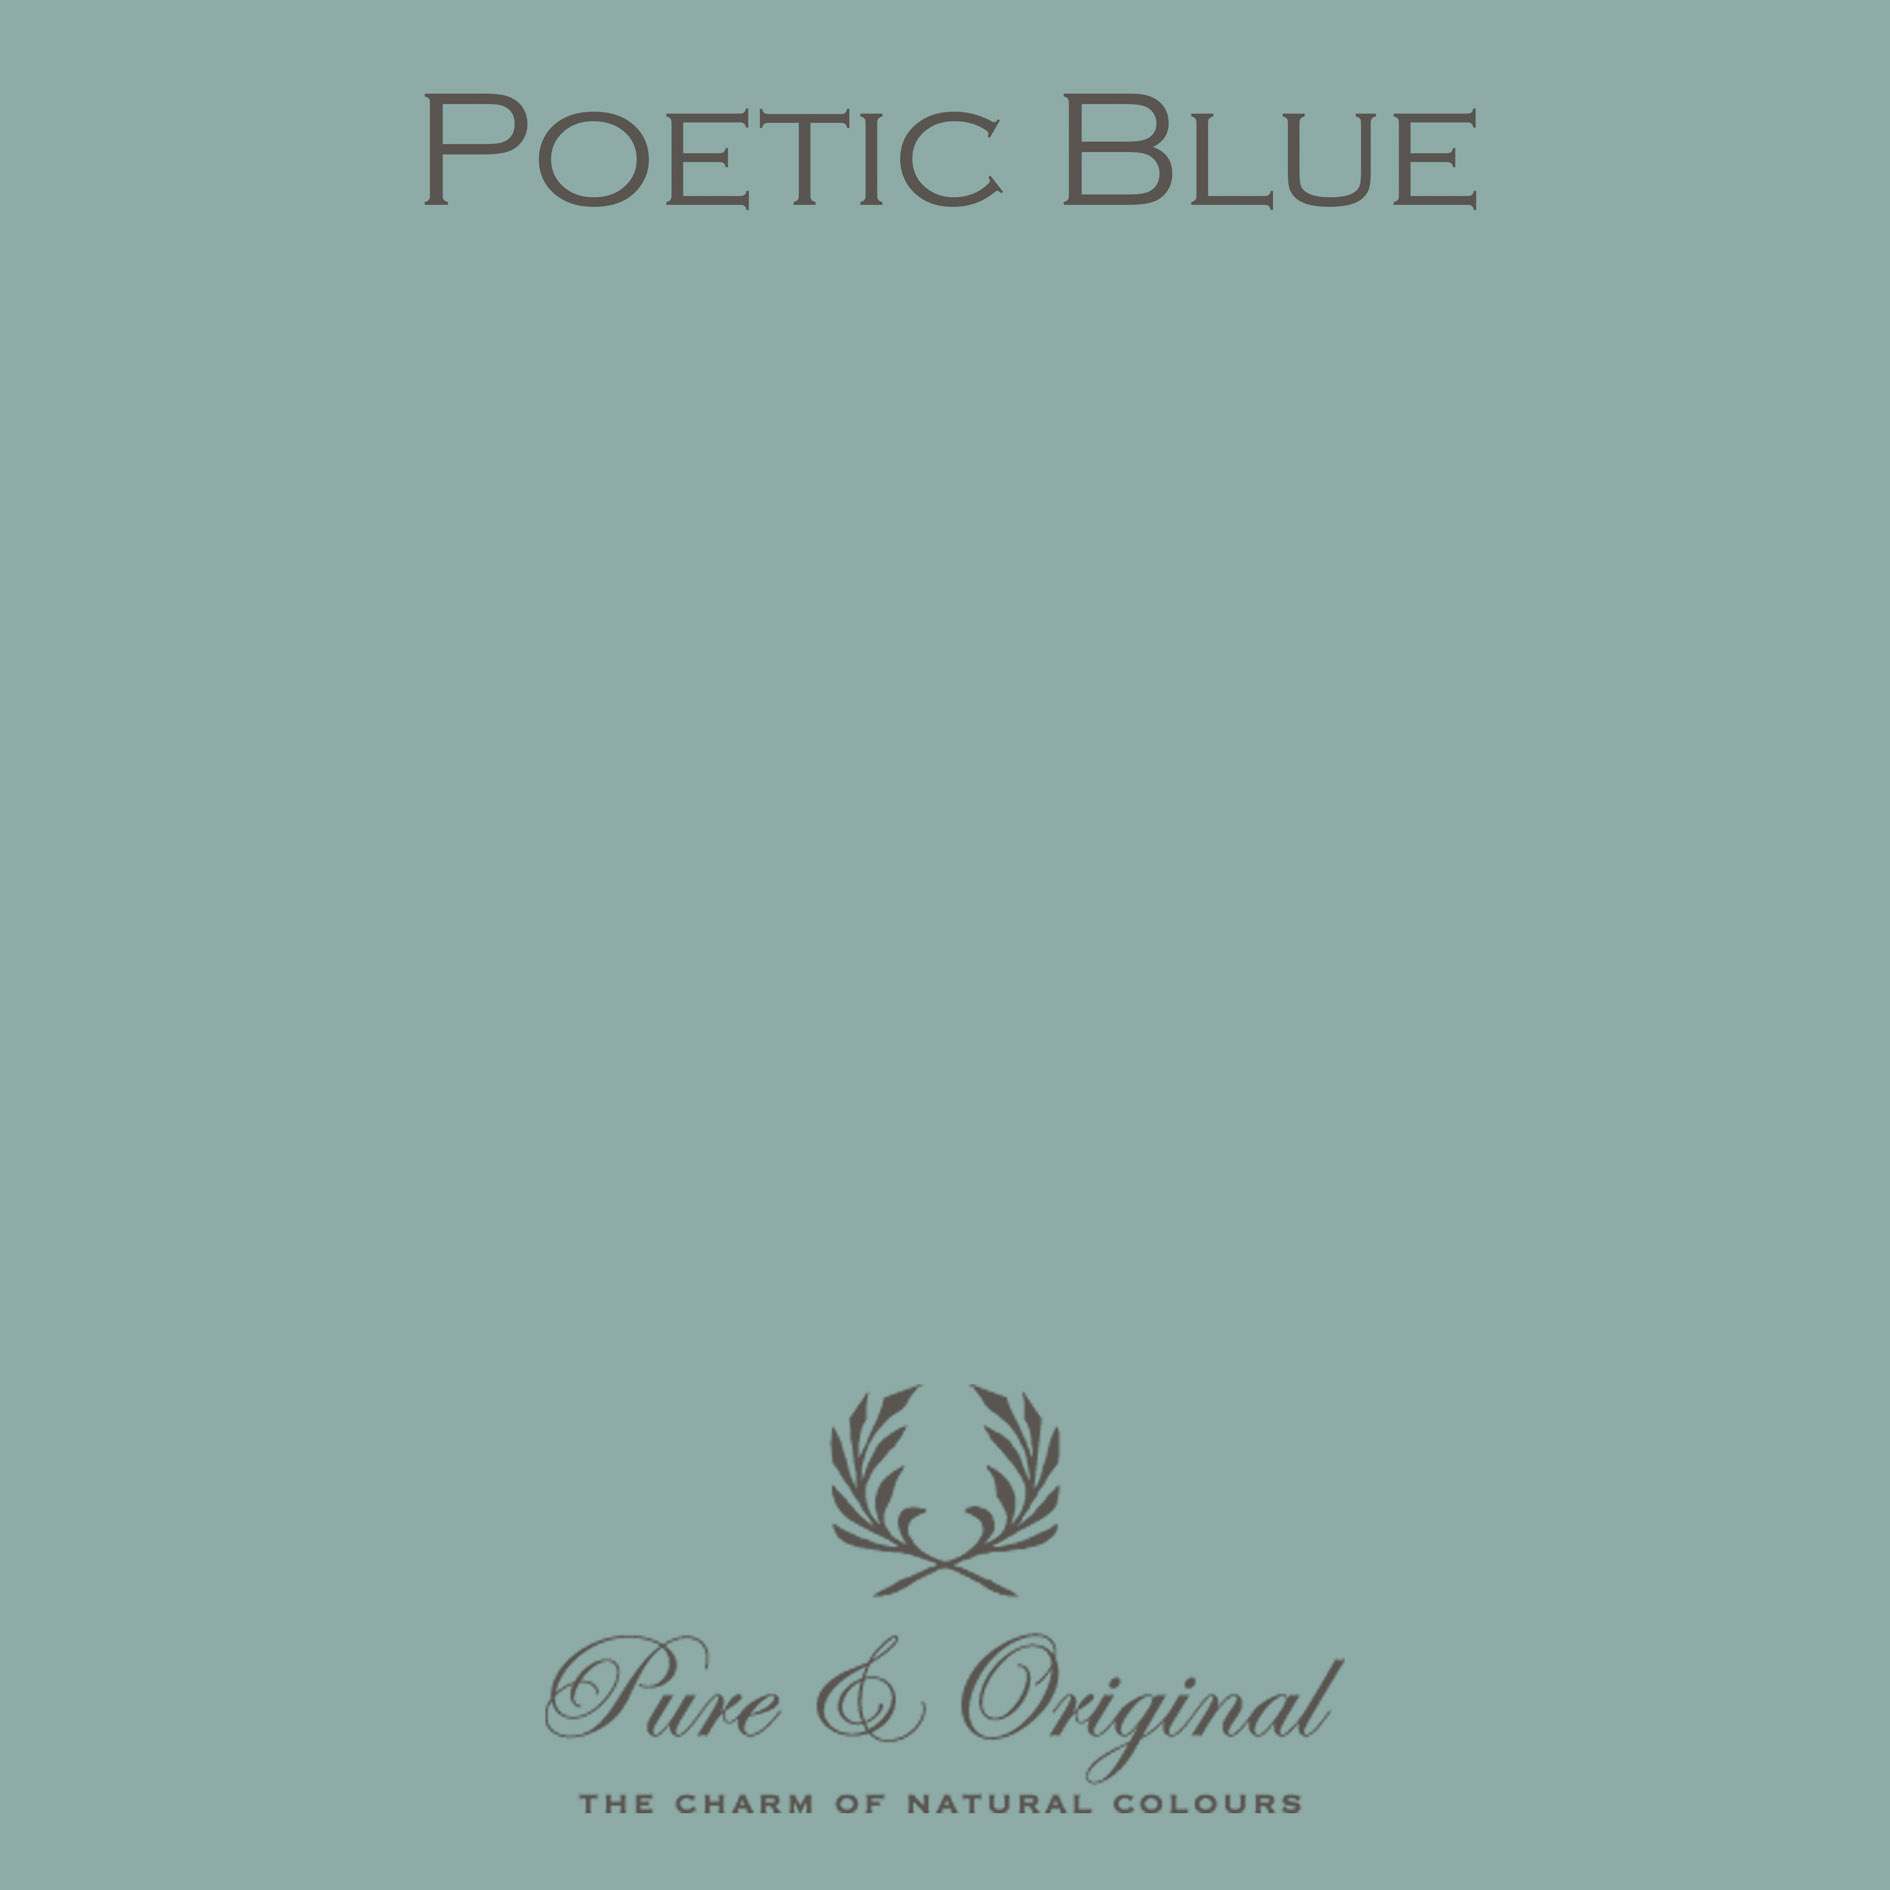 Pure & Original Poetic Blue